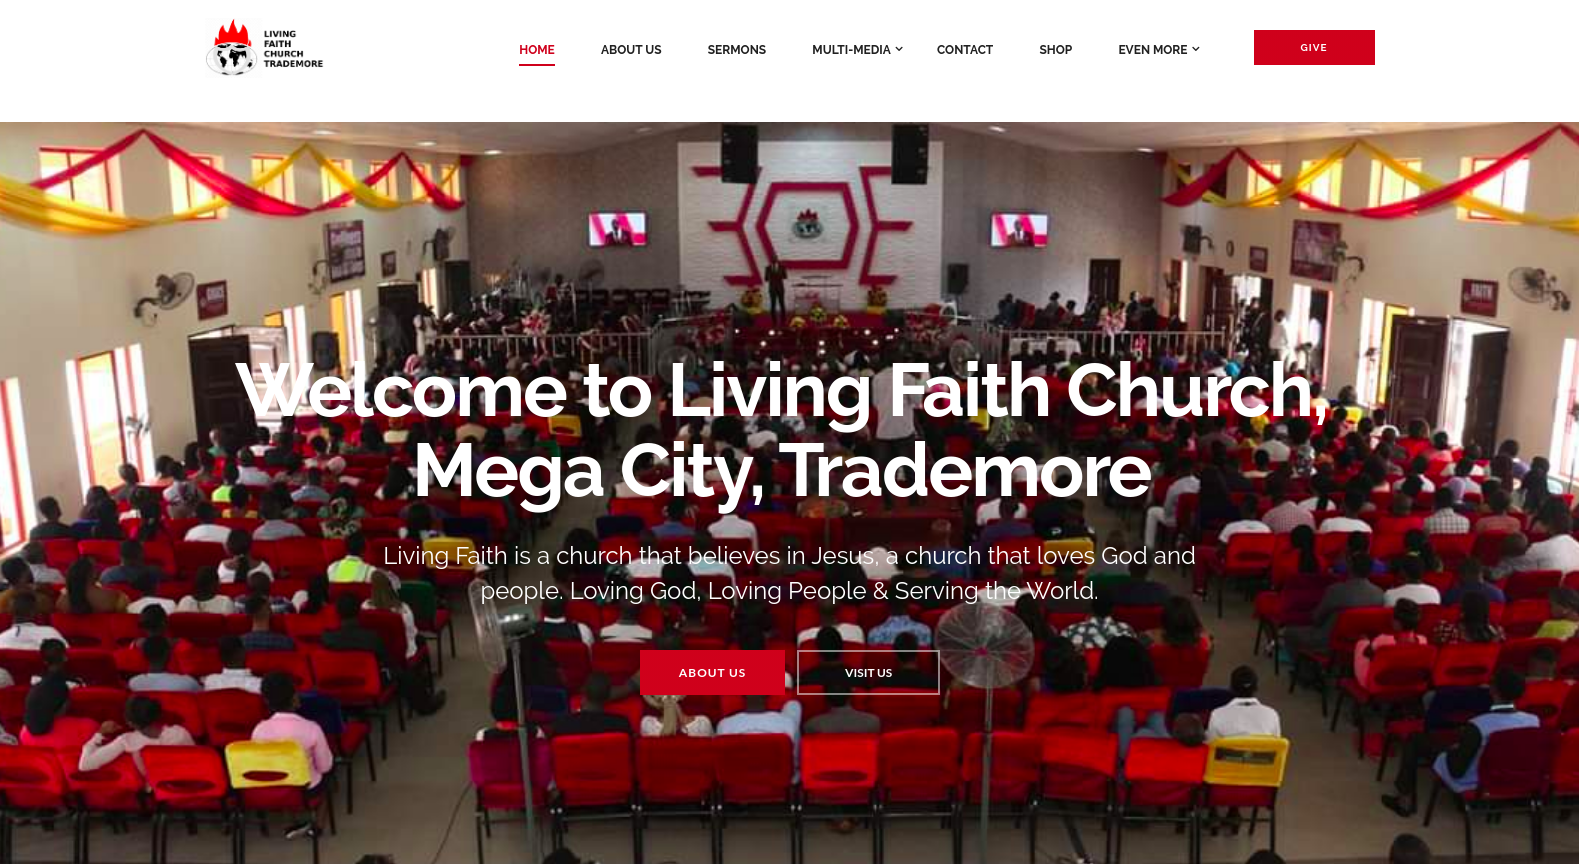 Living Faith Church Trademore